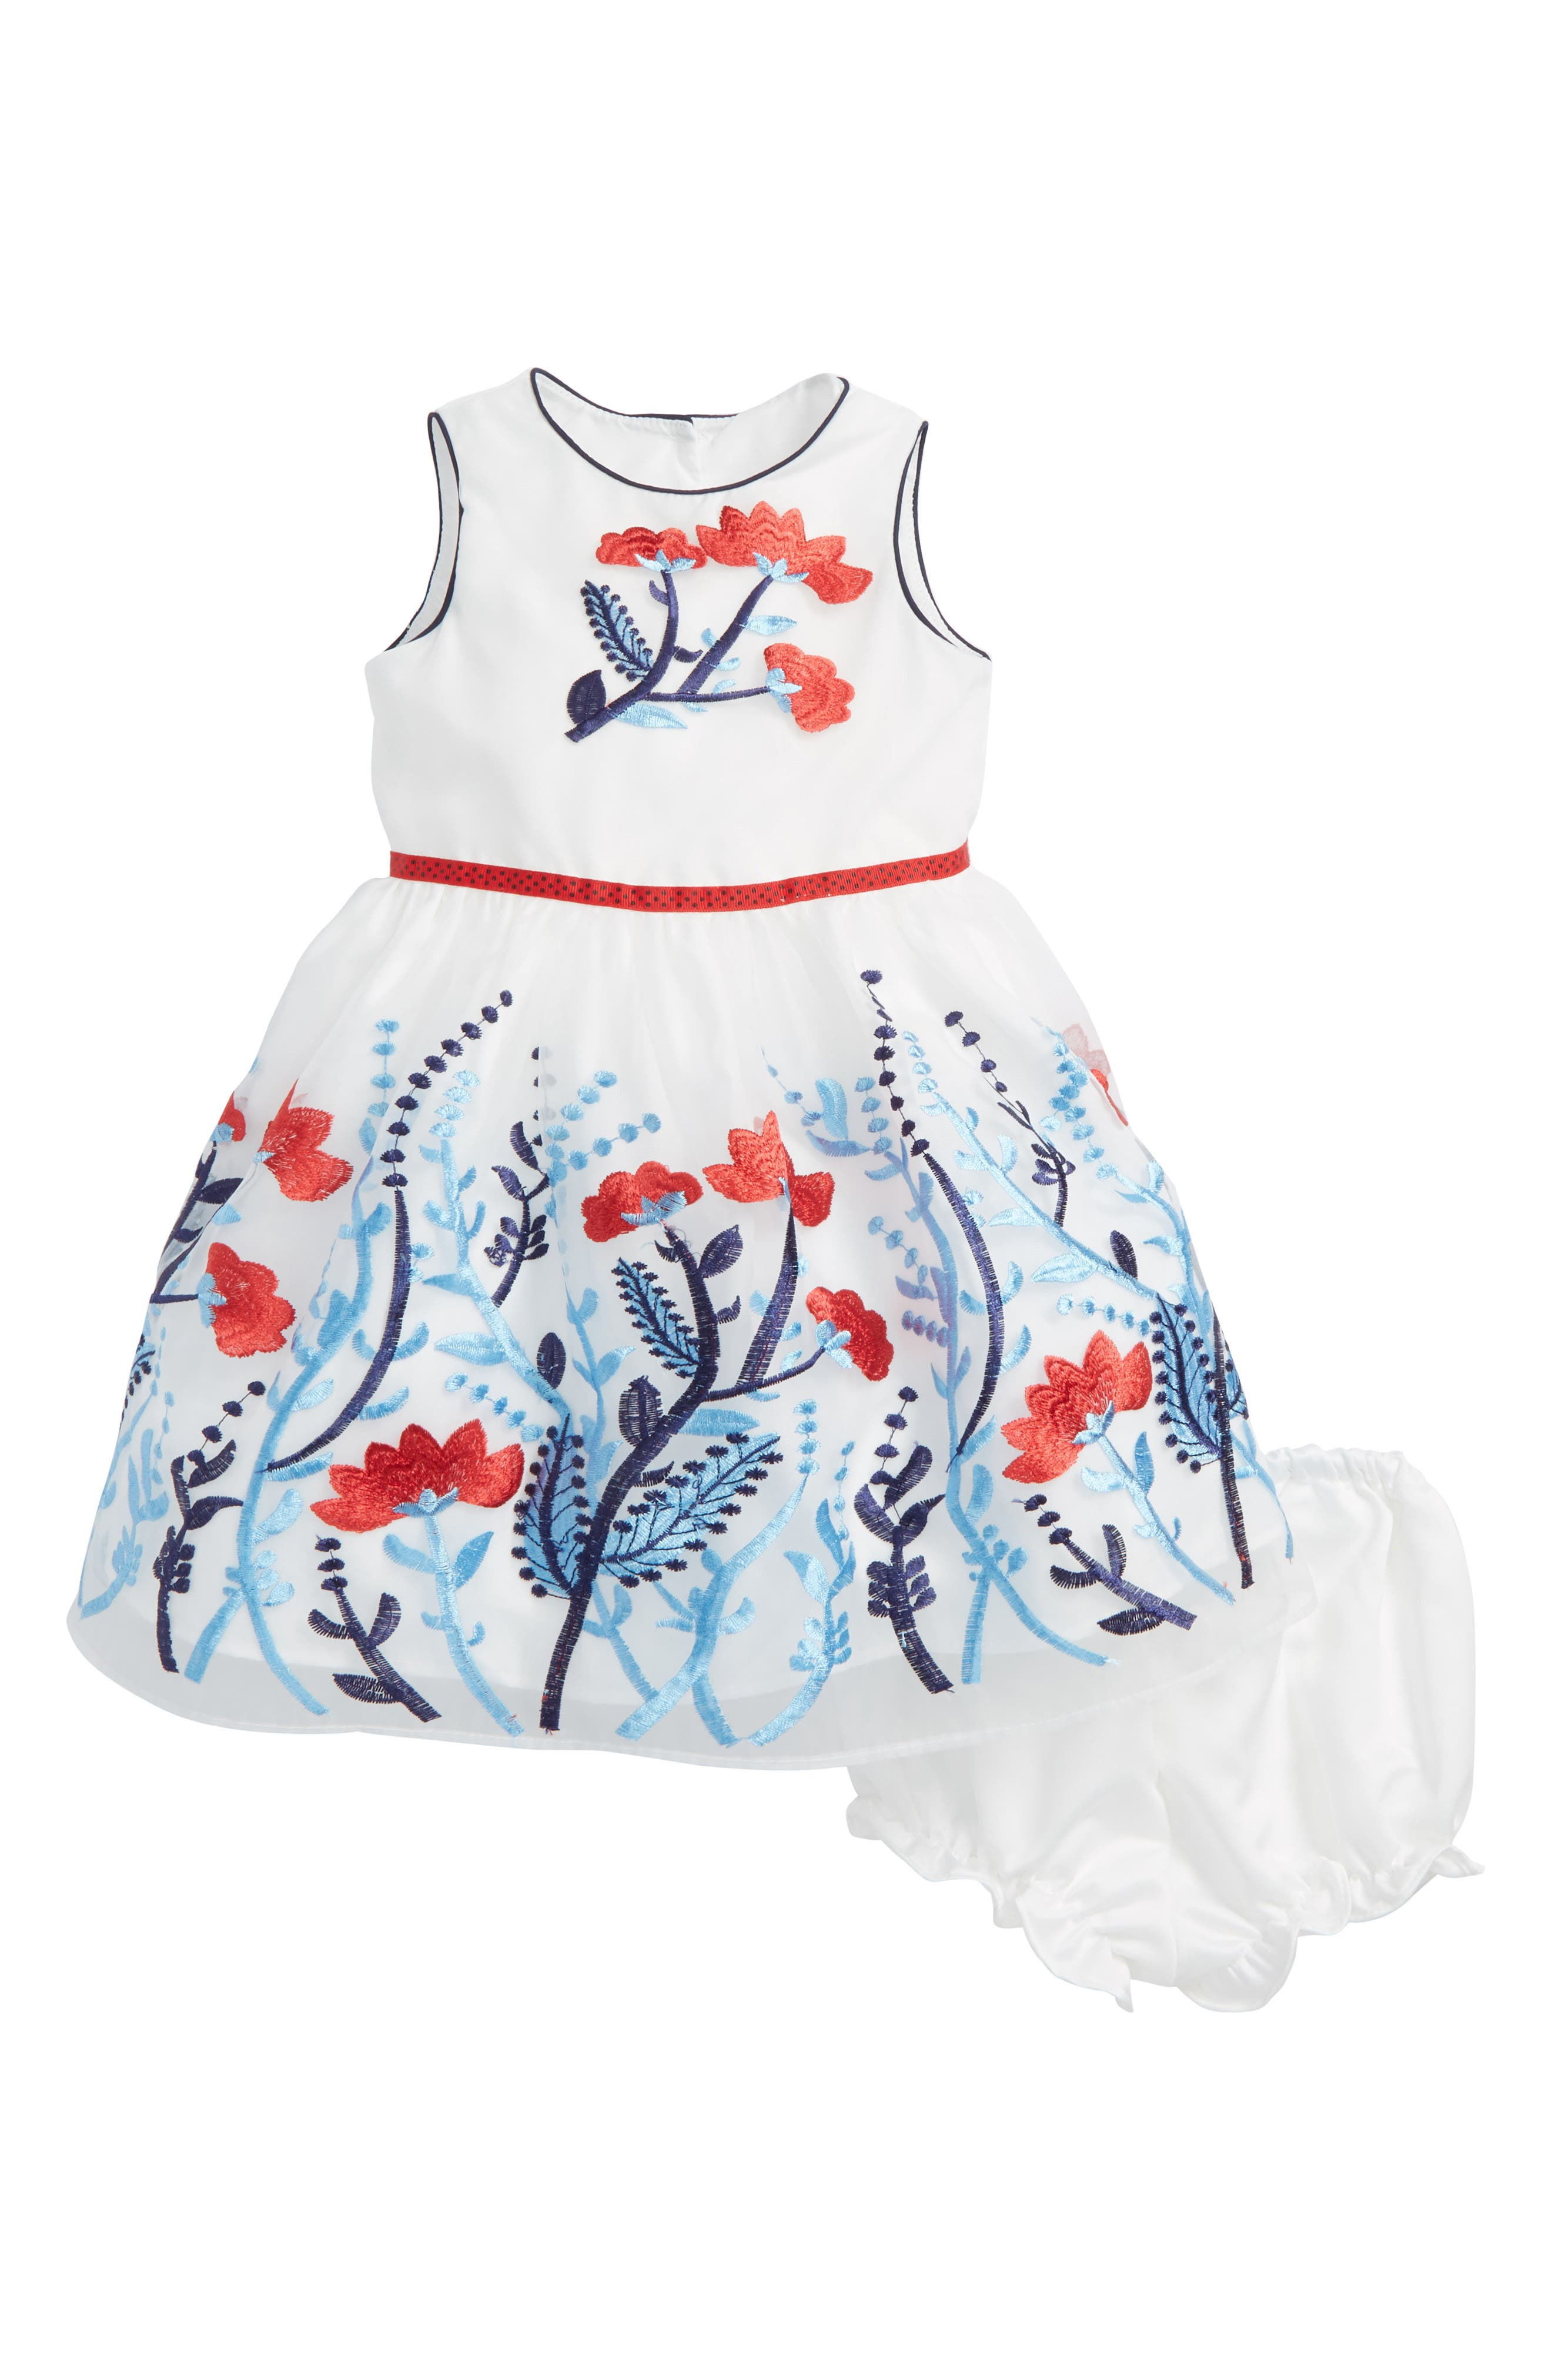 Main Image - Pippa & Julie Embroidered Flower Dress (Baby Girls)